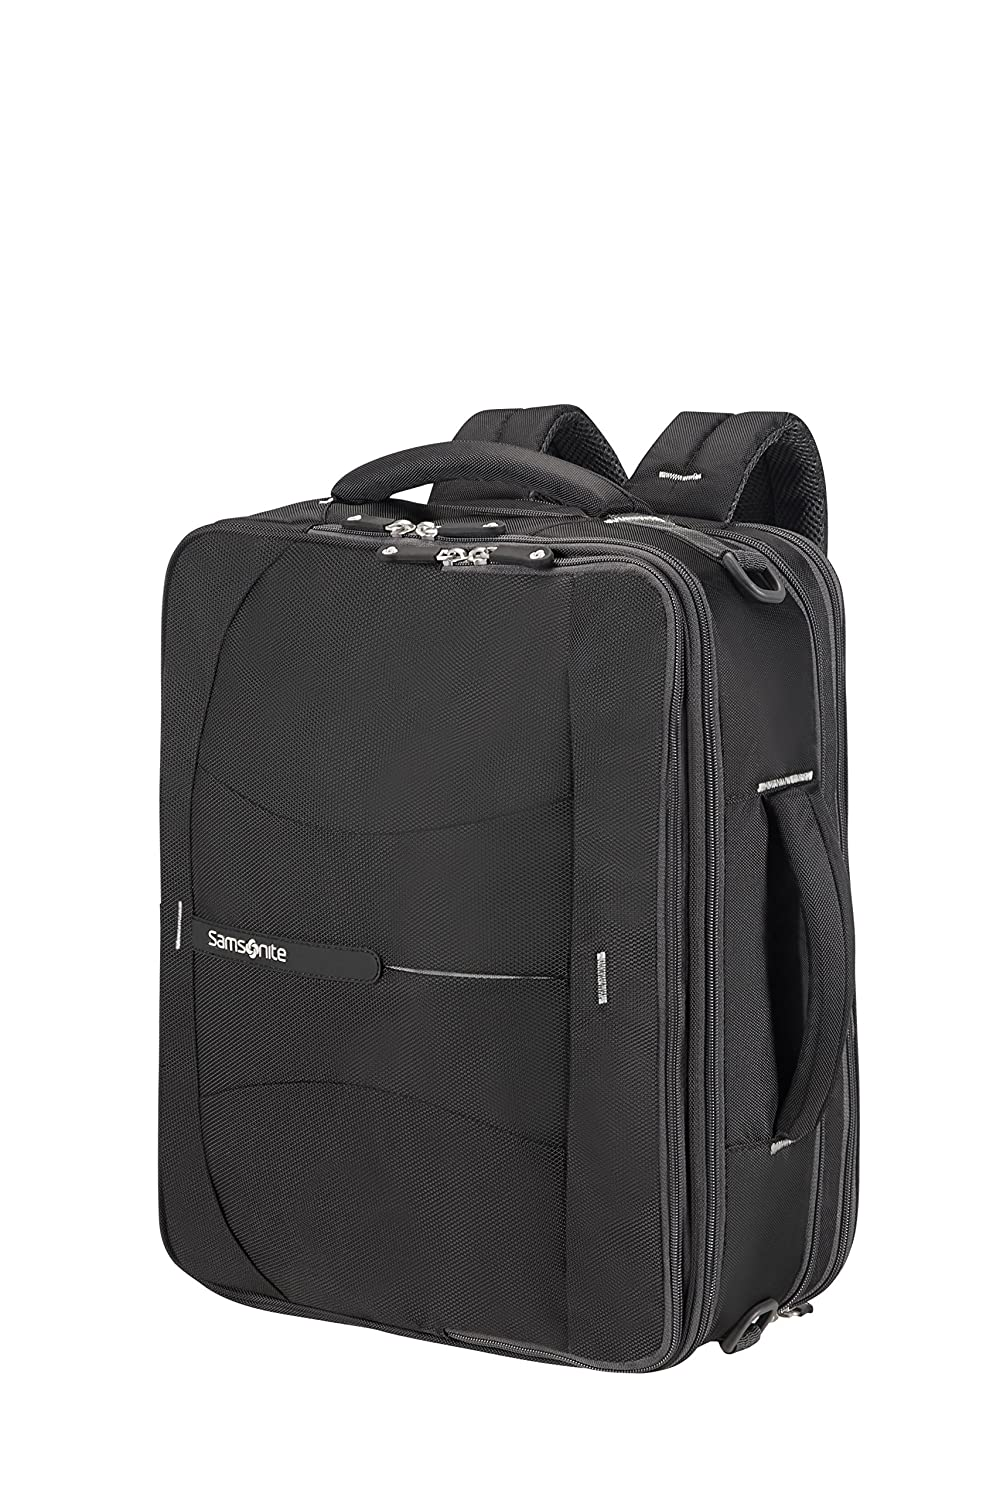 Samsonite 4mation 3-Way Shoulder Bag Exp Mochila Tipo Casual, 36.5 litros, Color Negro/Plateado: Amazon.es: Equipaje